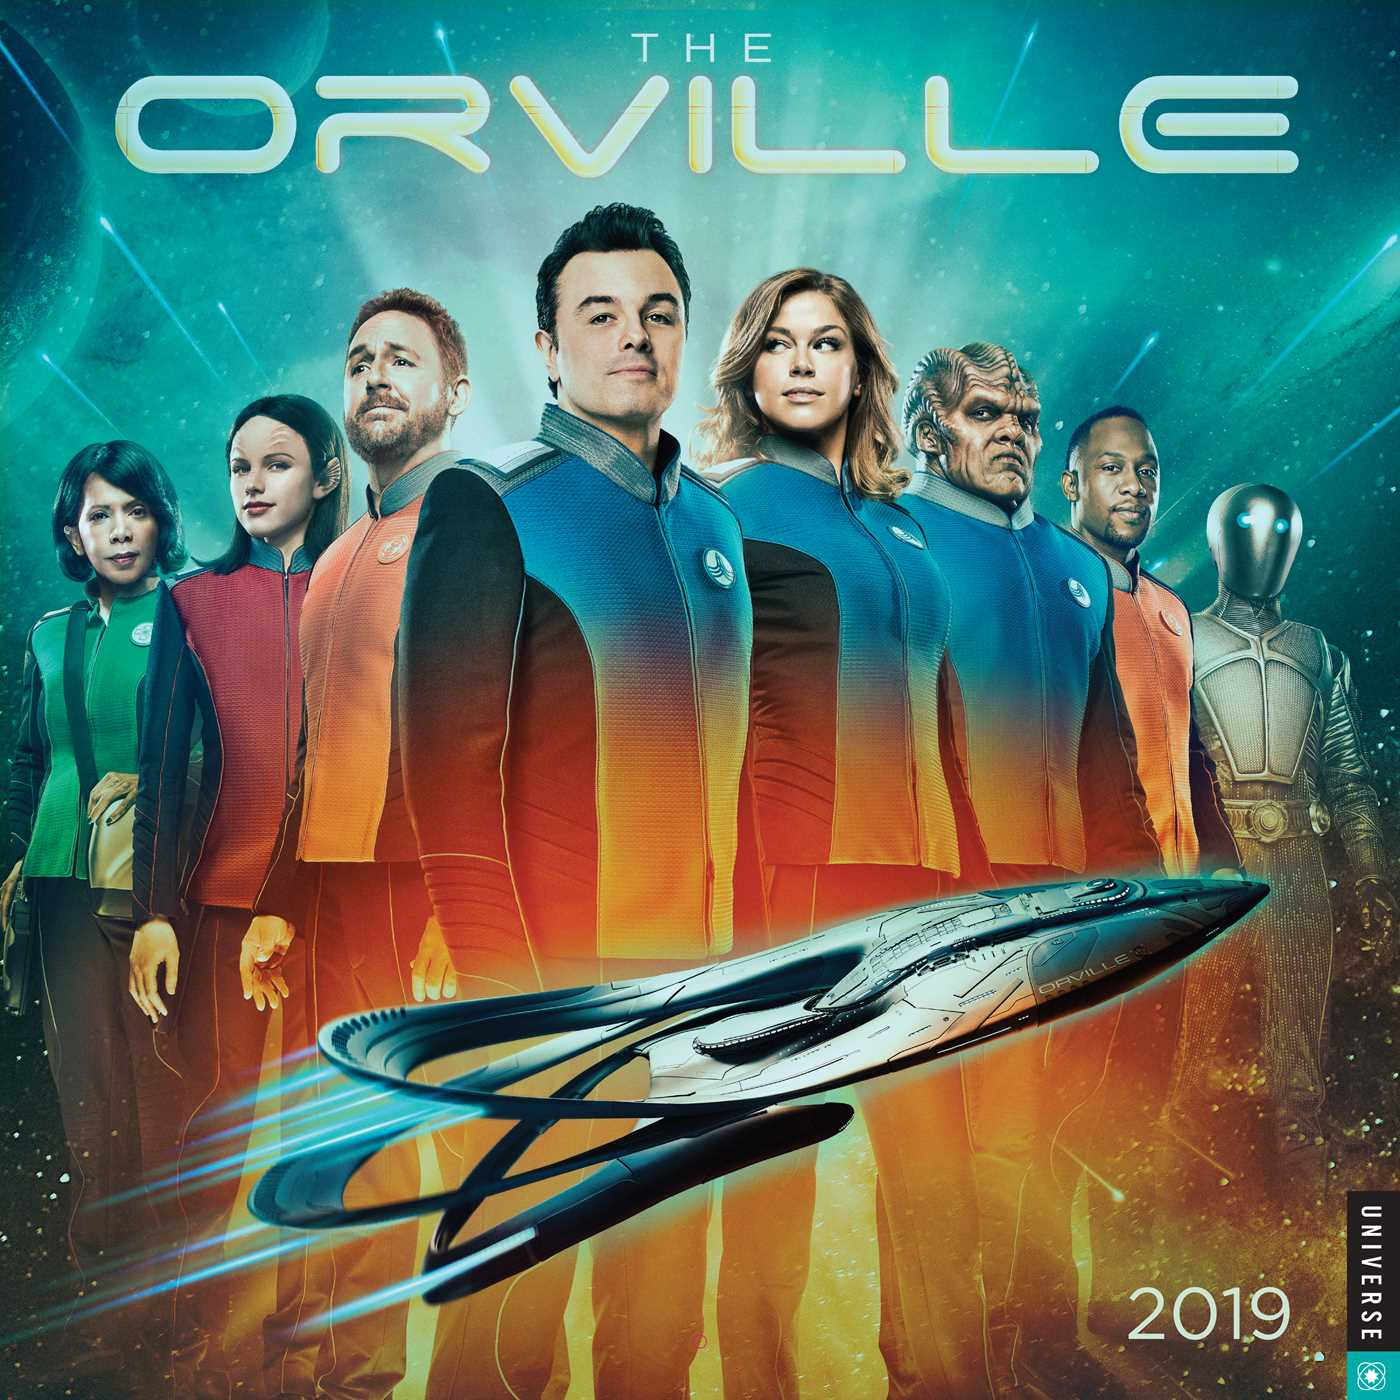 The Orville 2019 Wall Calendar (Other)